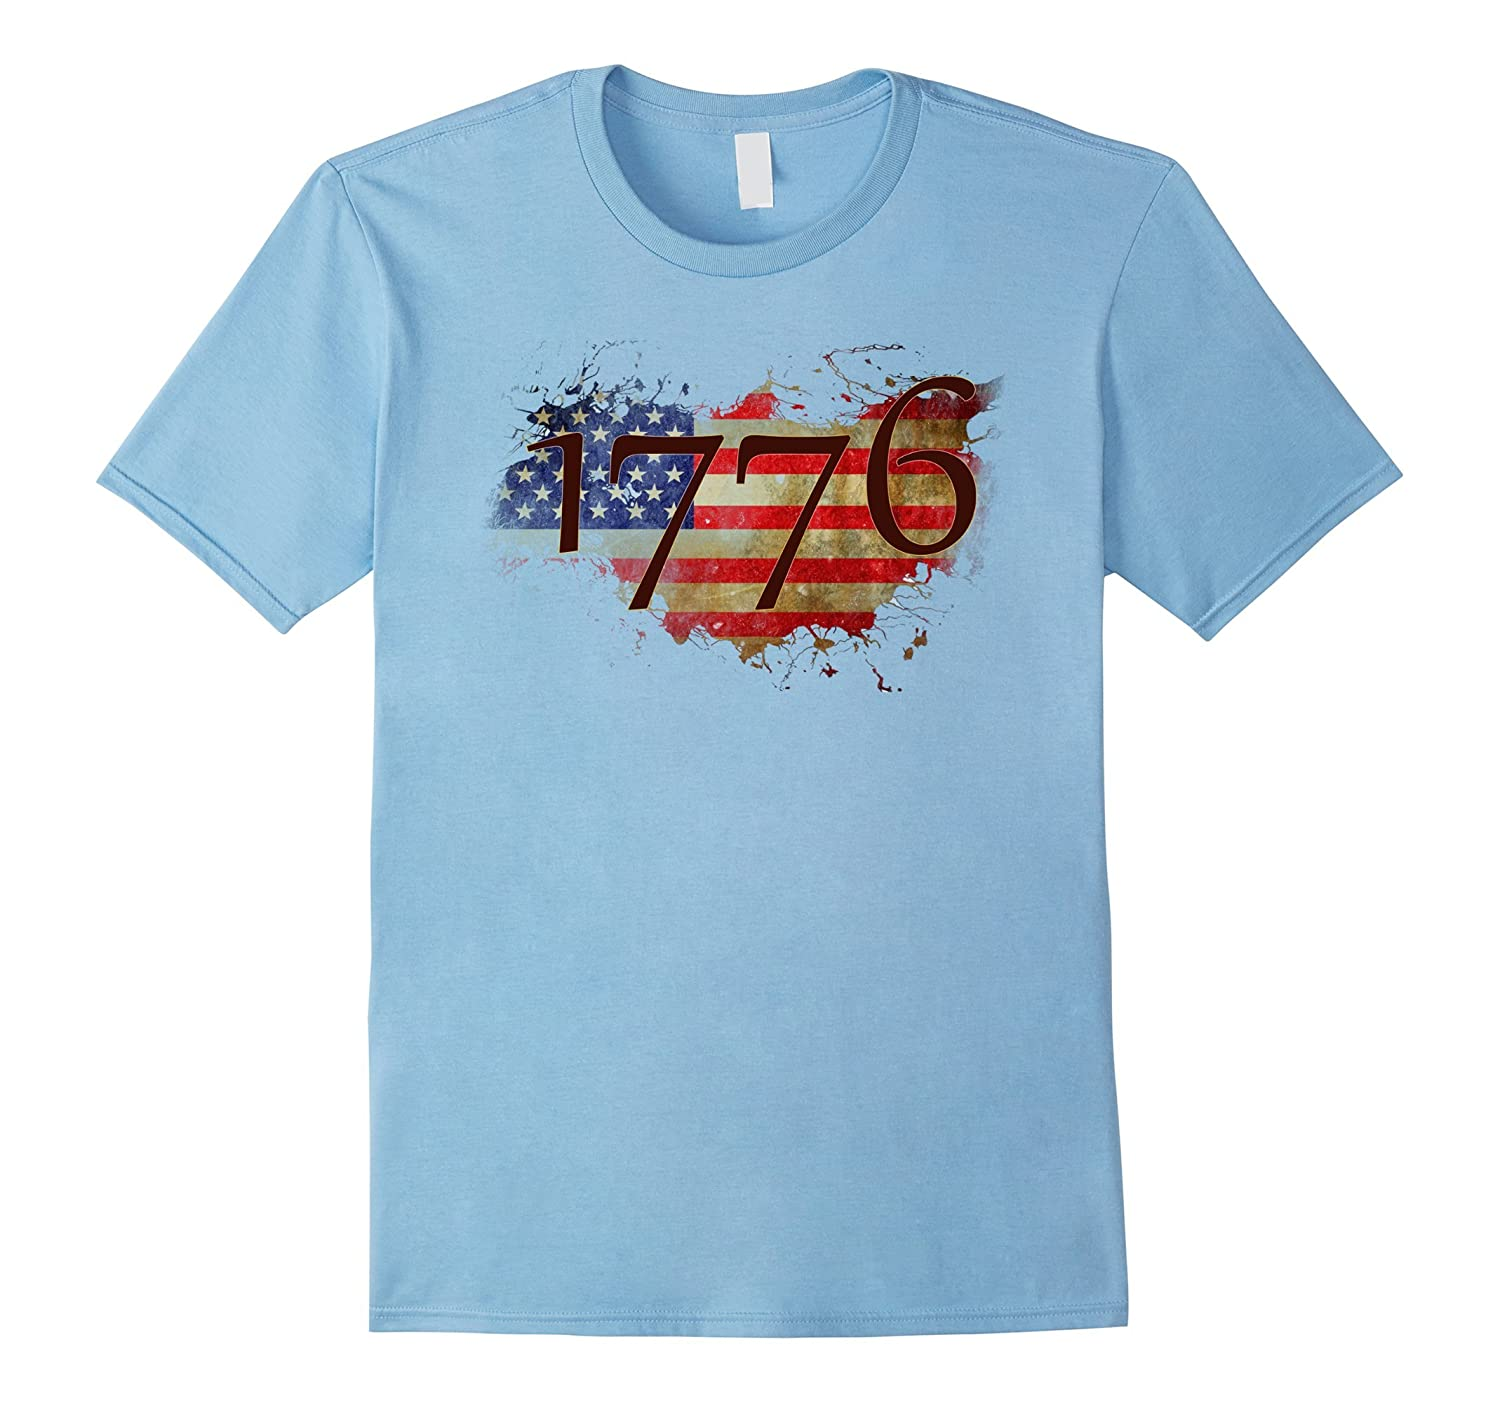 America Since 1776 with Flag retro T-shirt July 4th-TH